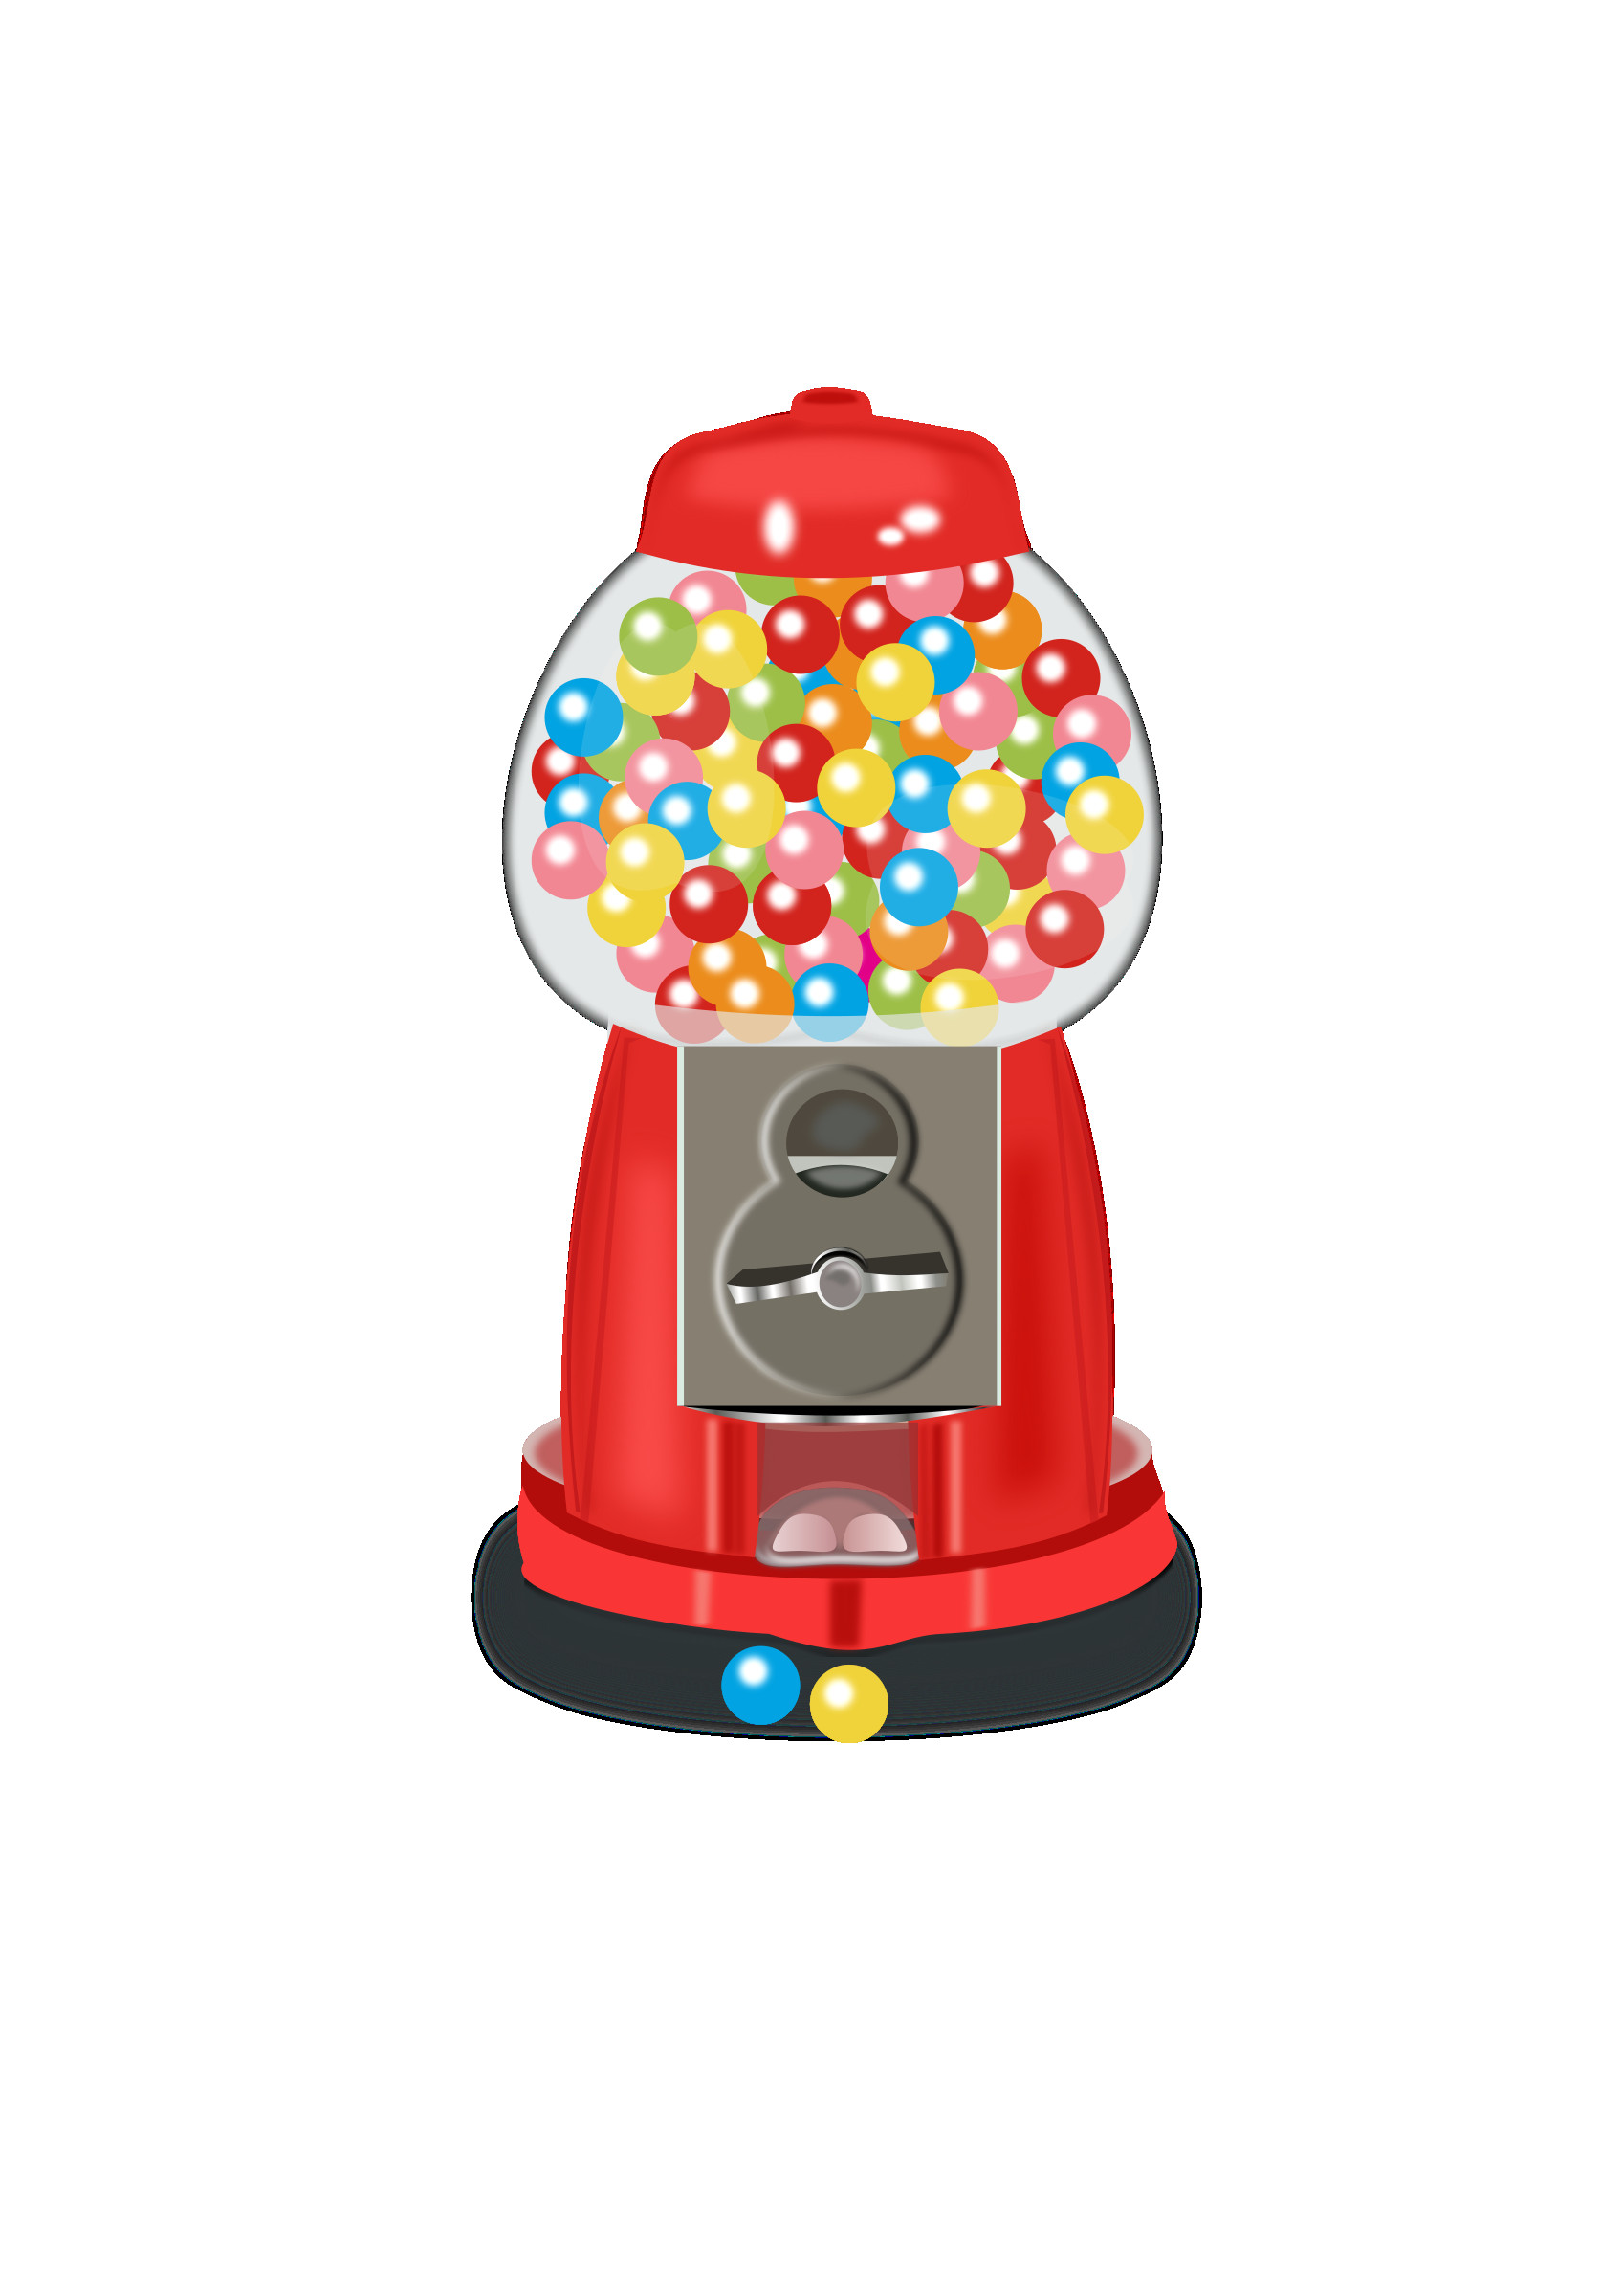 Gumball machine clipart bubble gum. At reactiongif me ball